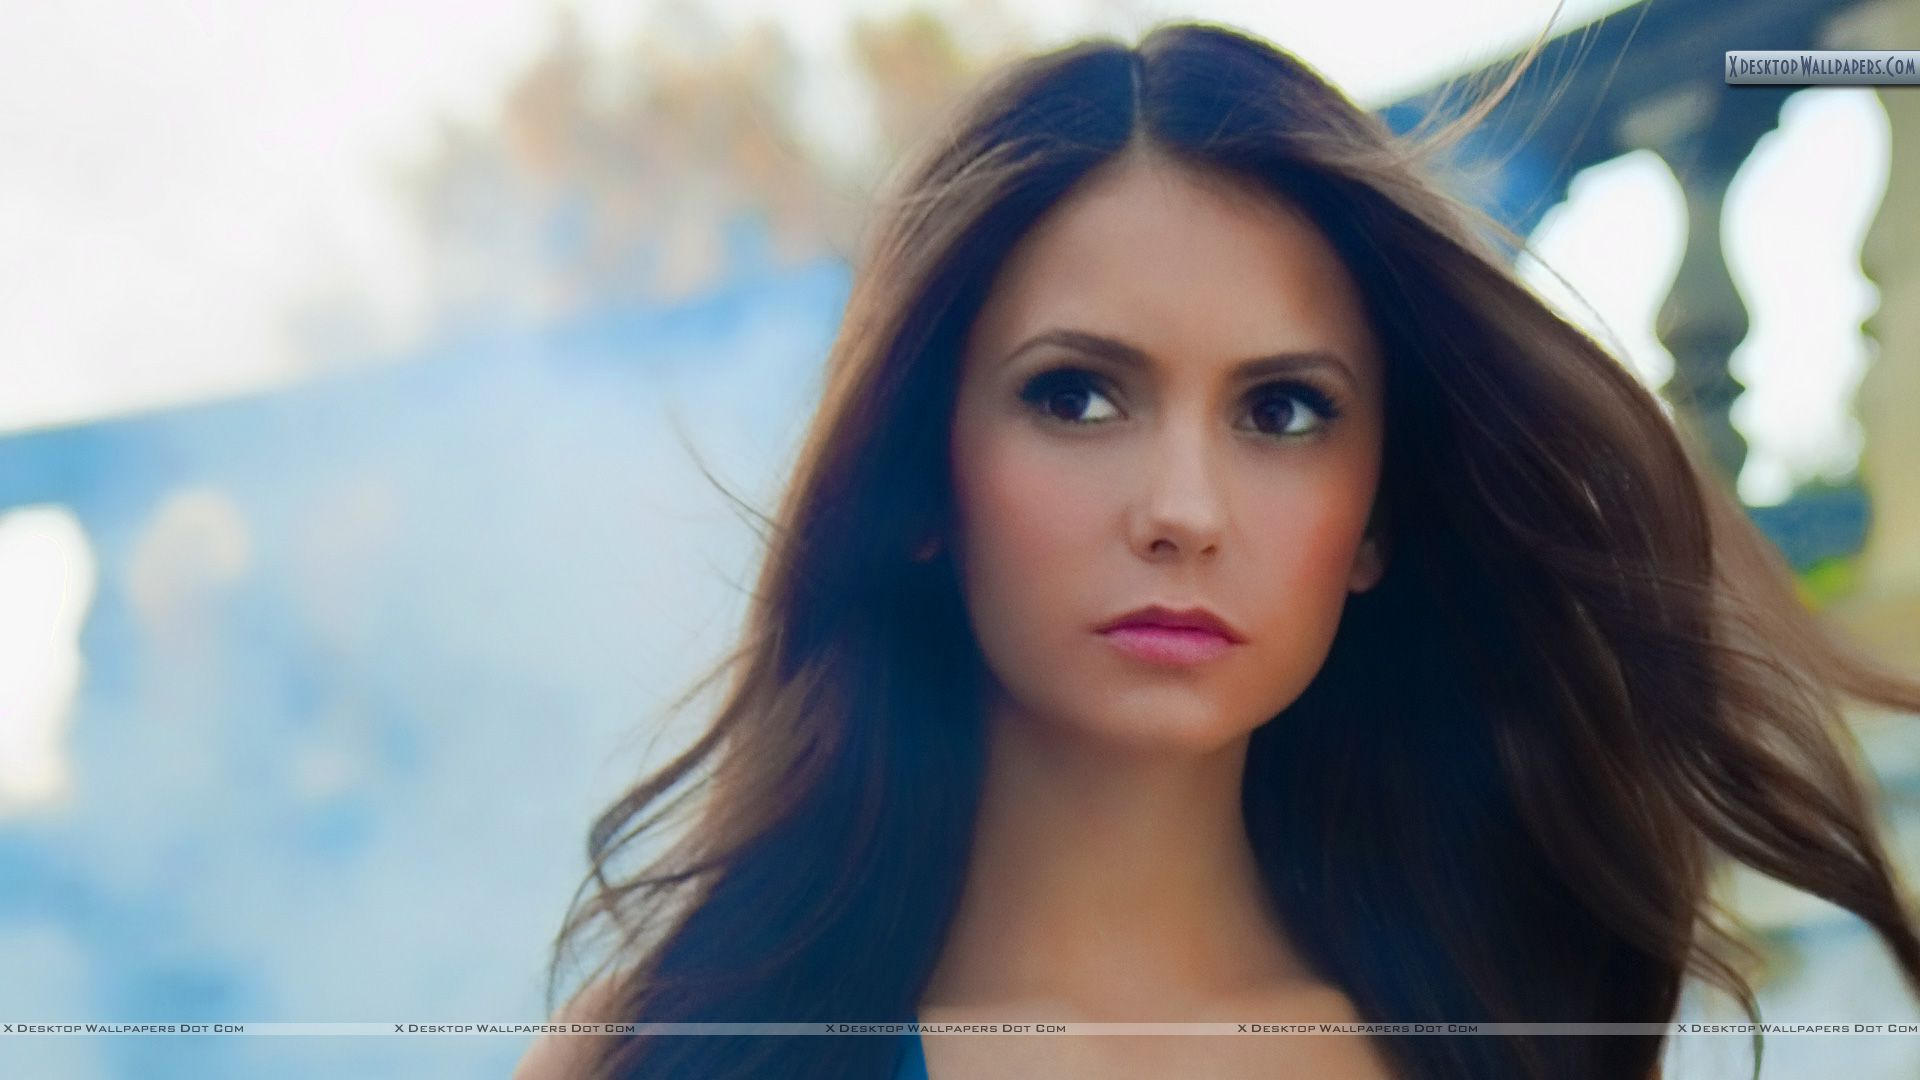 The Young And Gorgeous Nina Dobrev Wallpapers